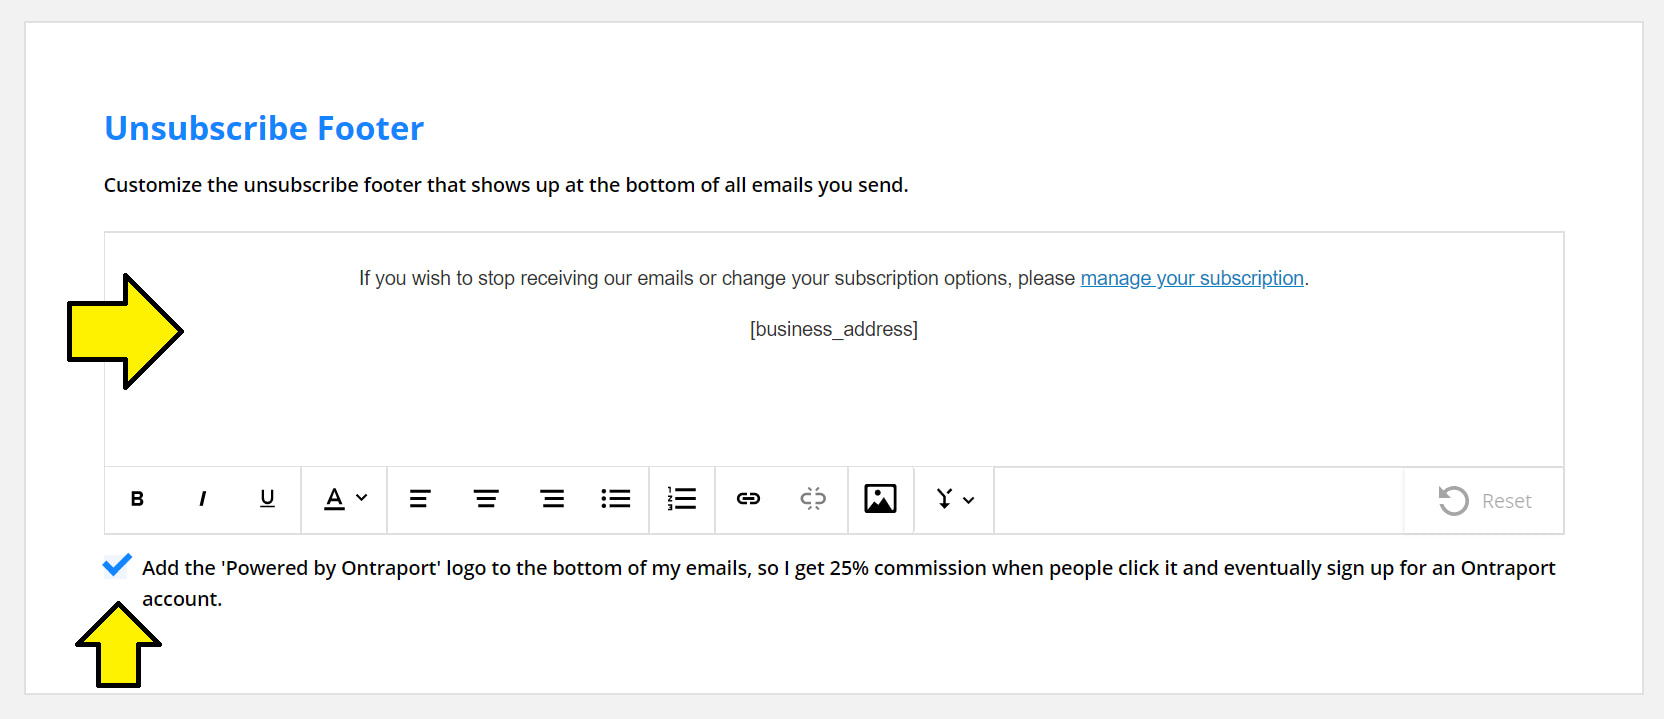 Update your unsubscription footer